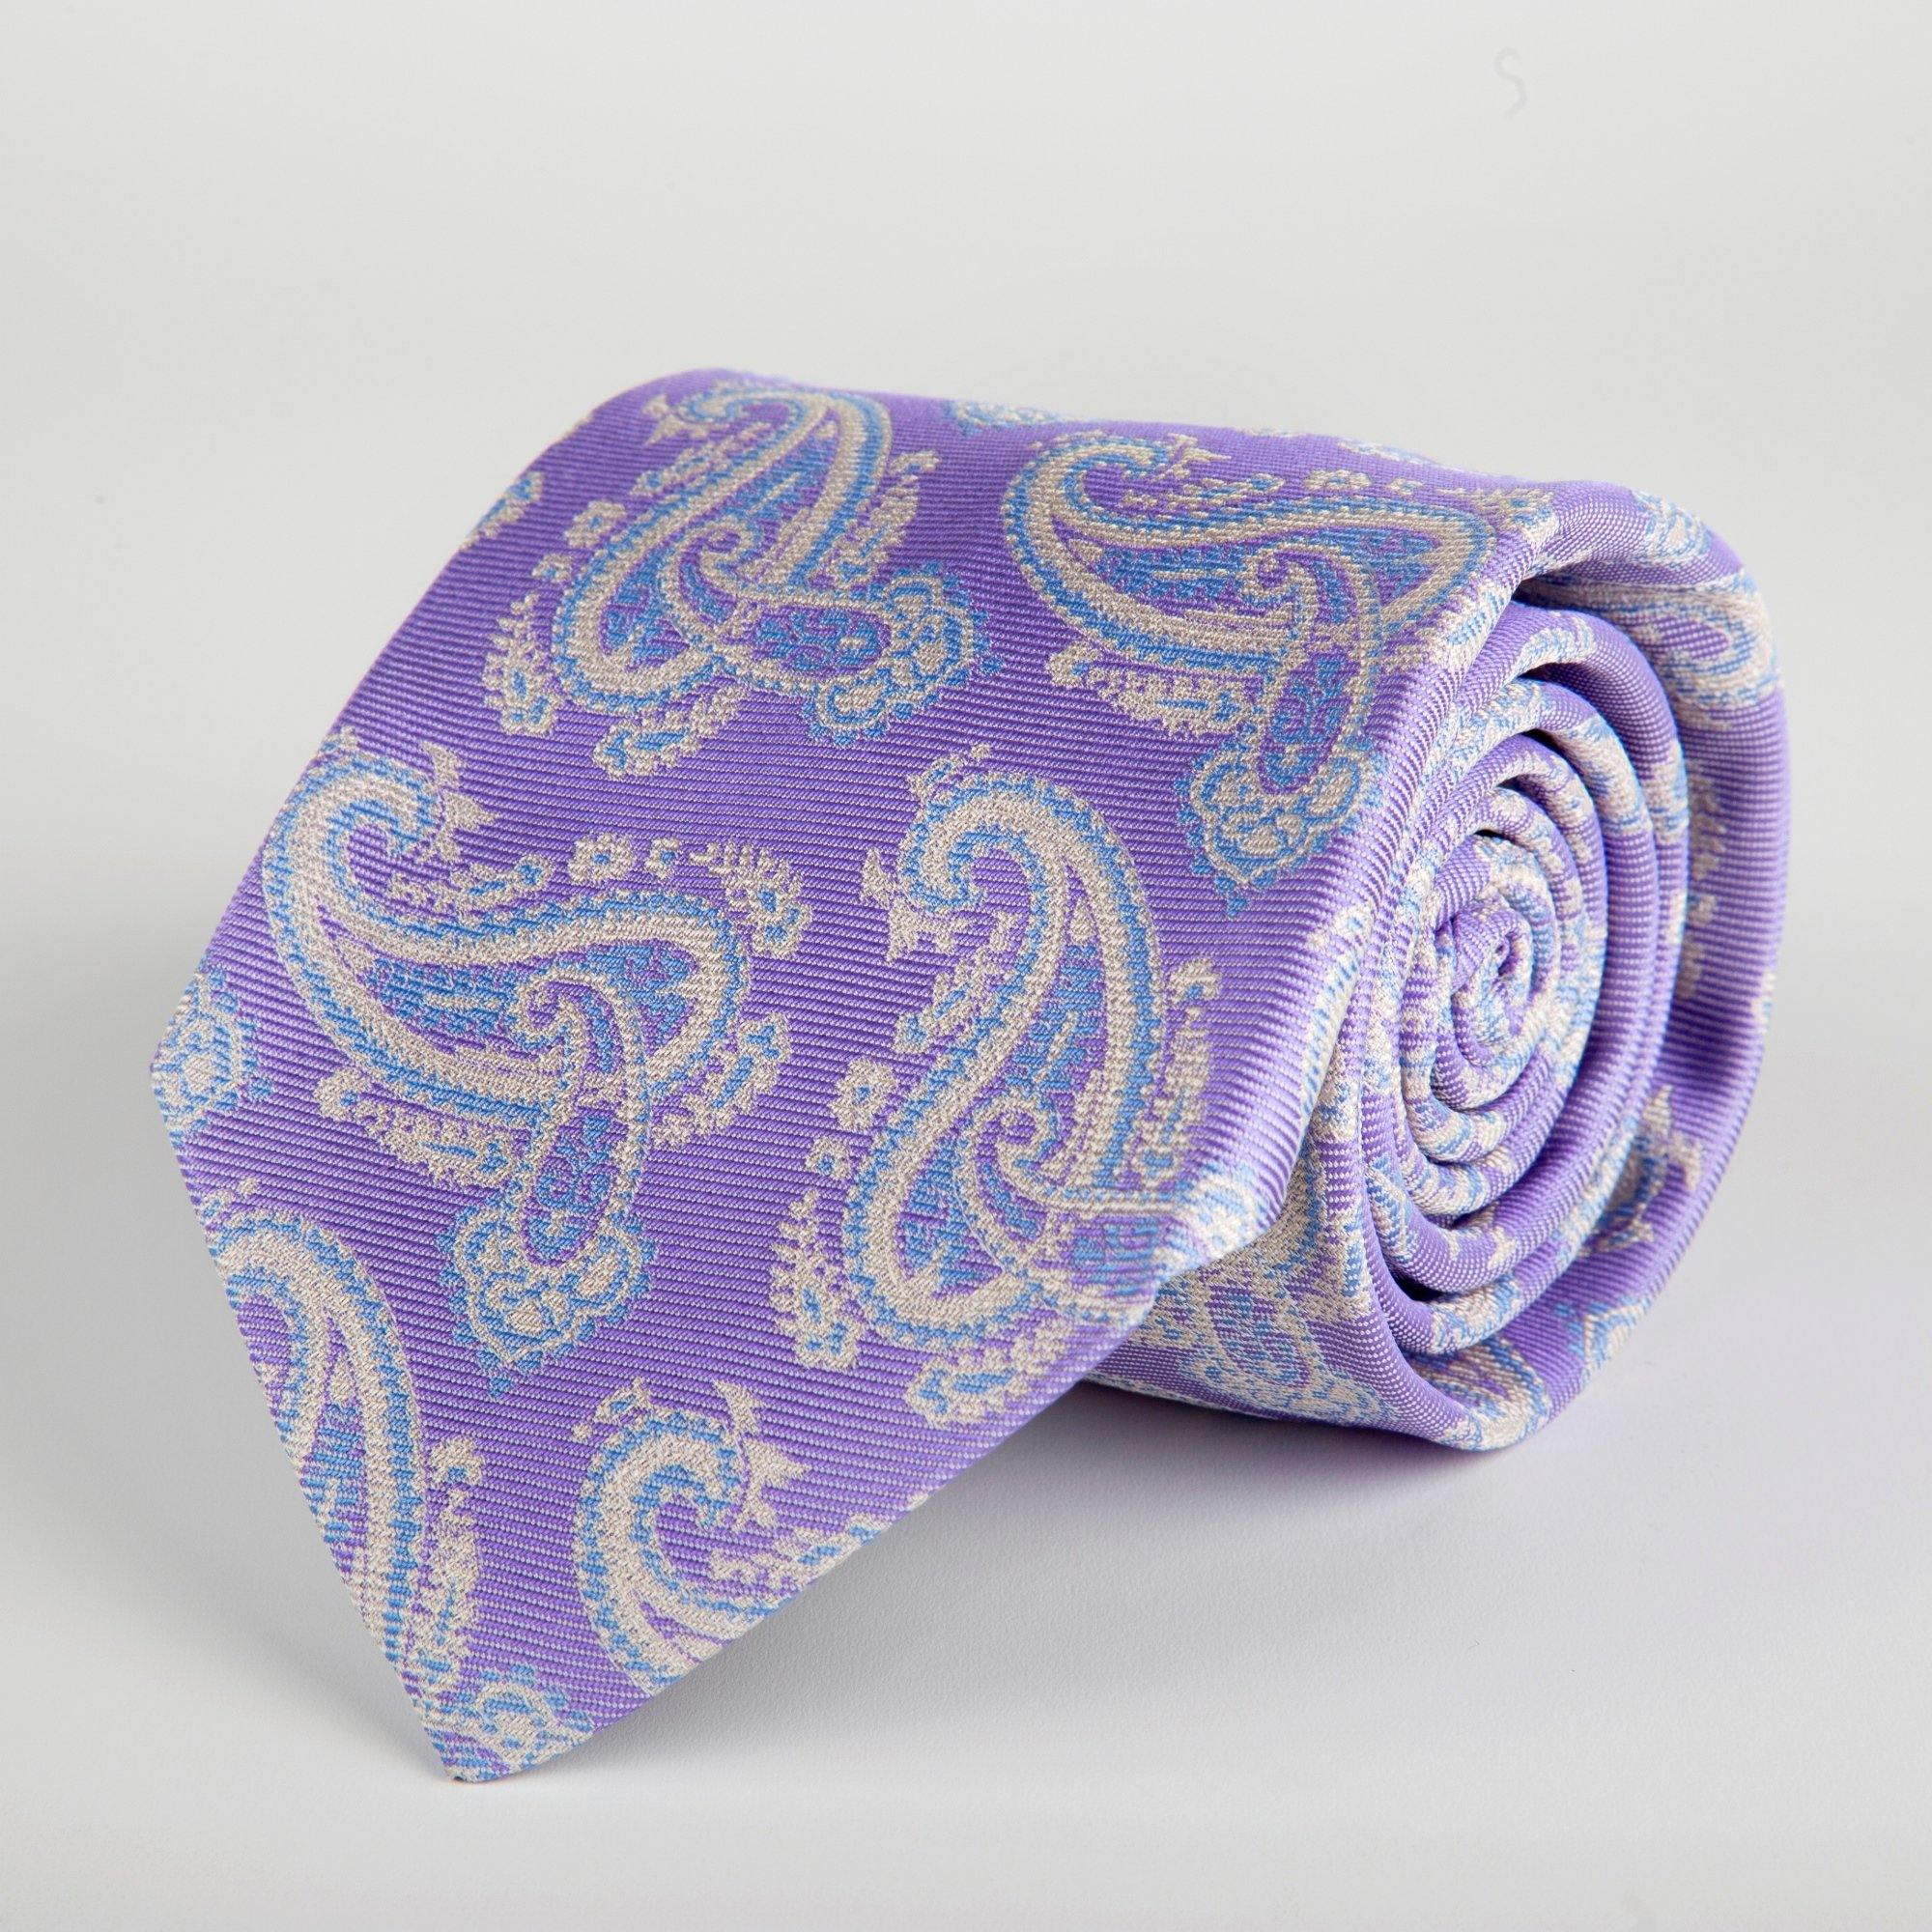 Purple Floral Paisley Woven Silk Tie Hand Finished - British Made